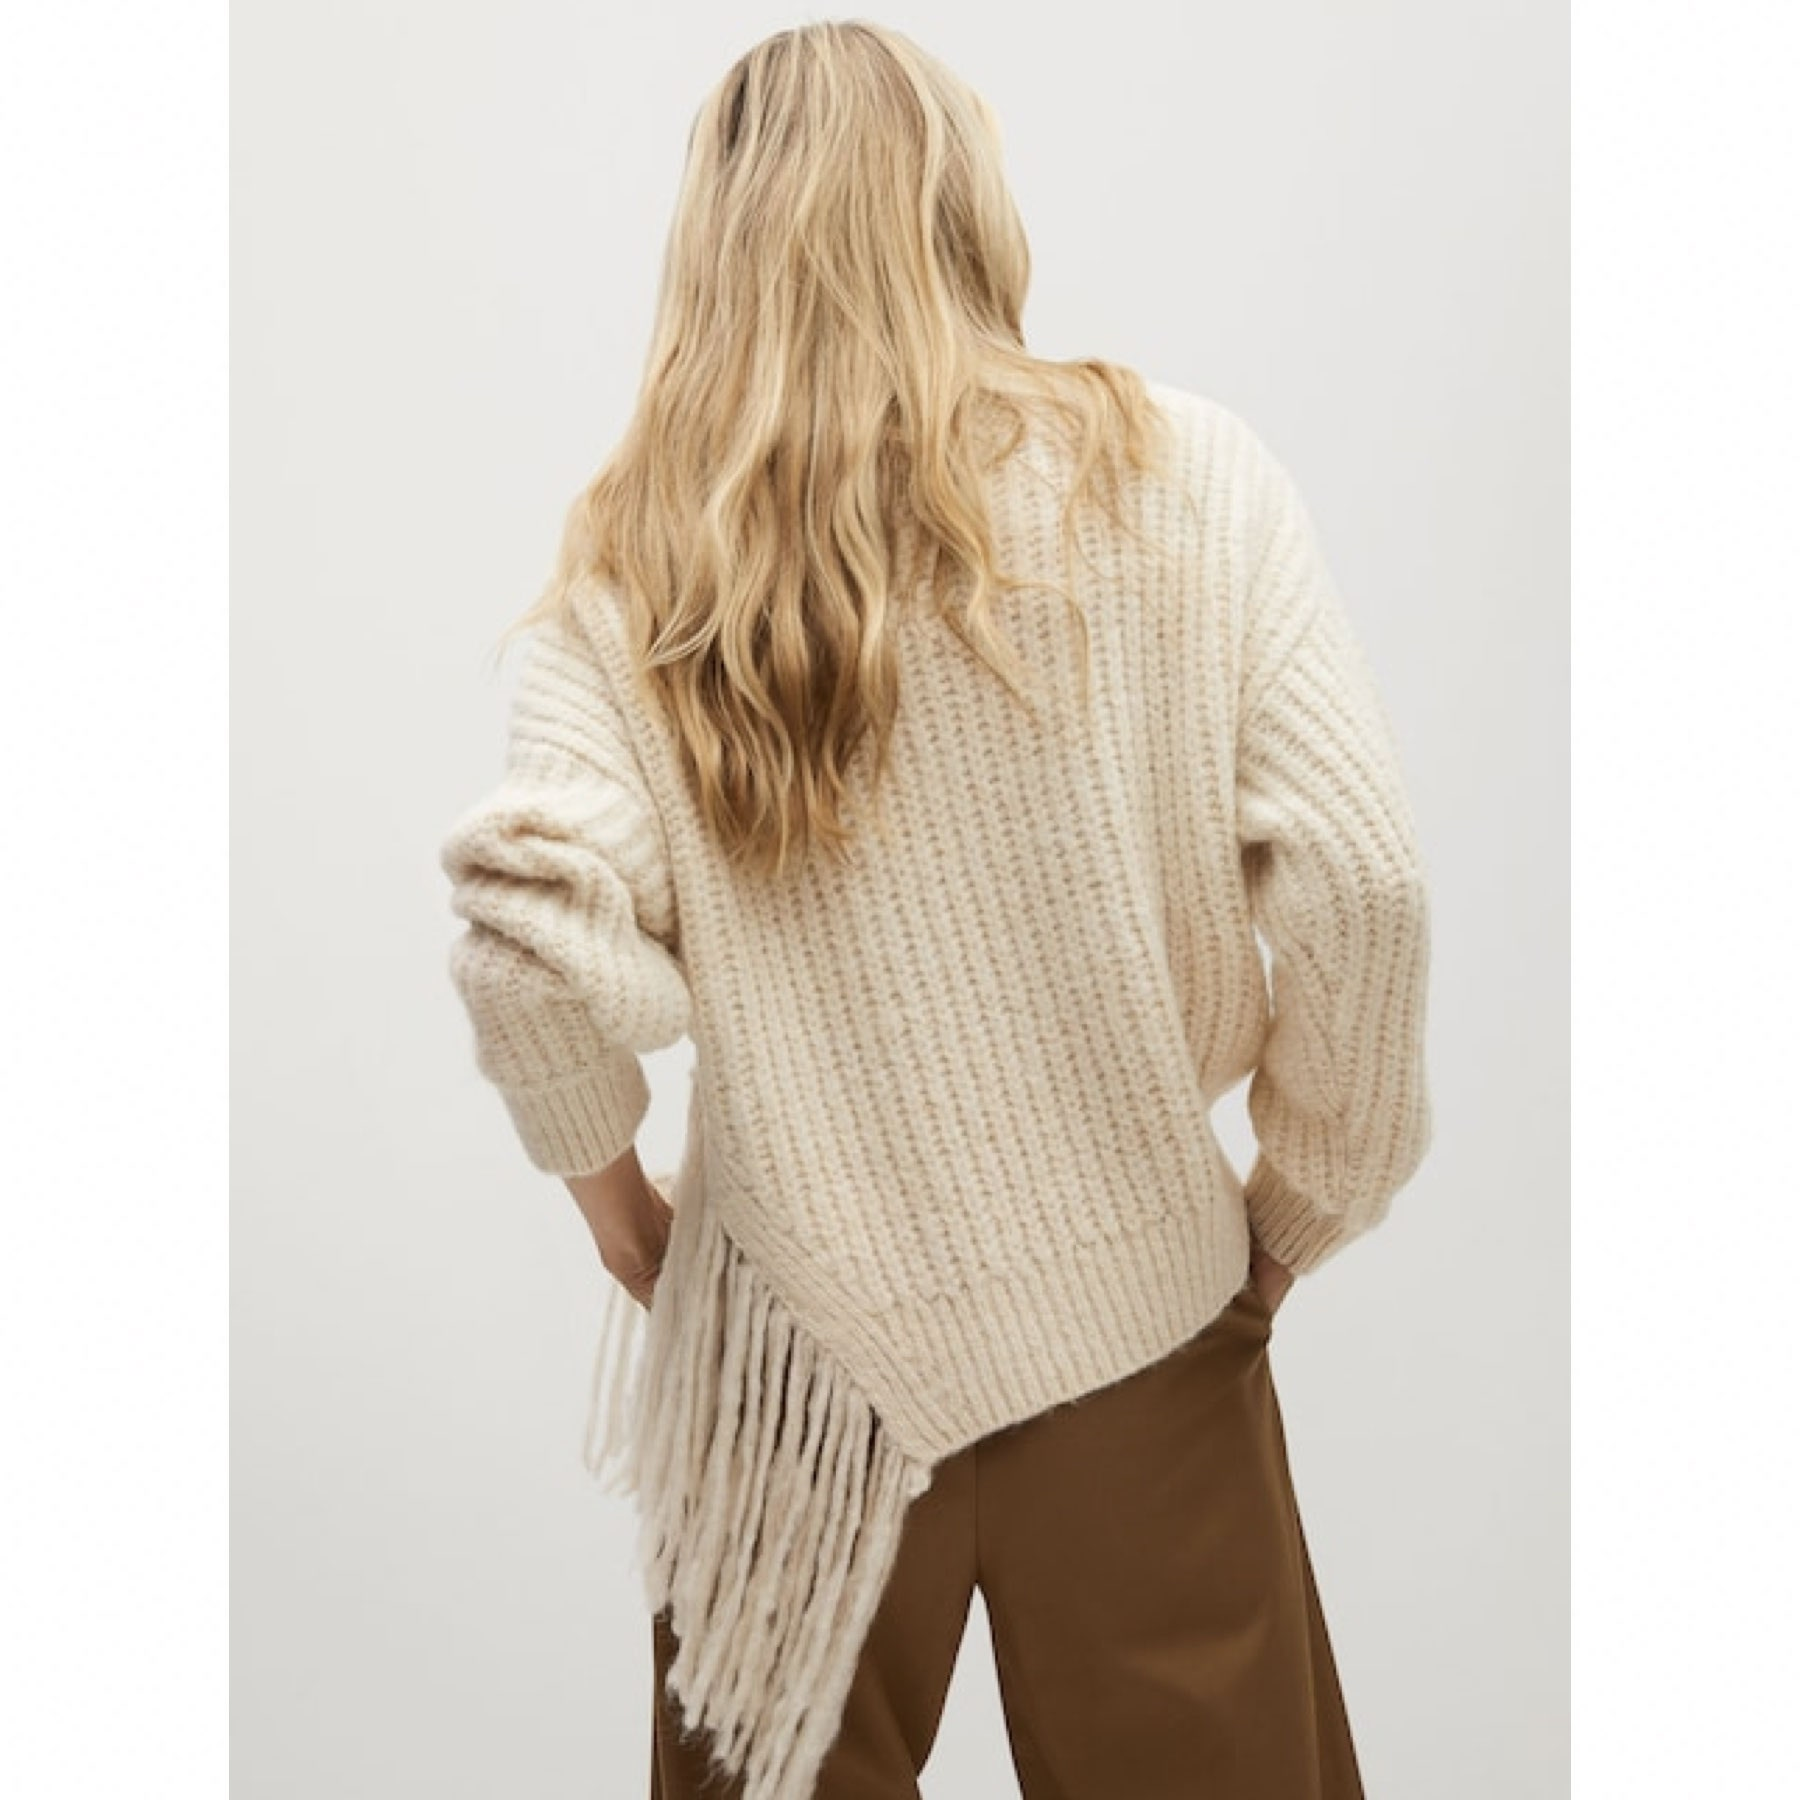 model wearing white ribbed sweater with fringe in the back